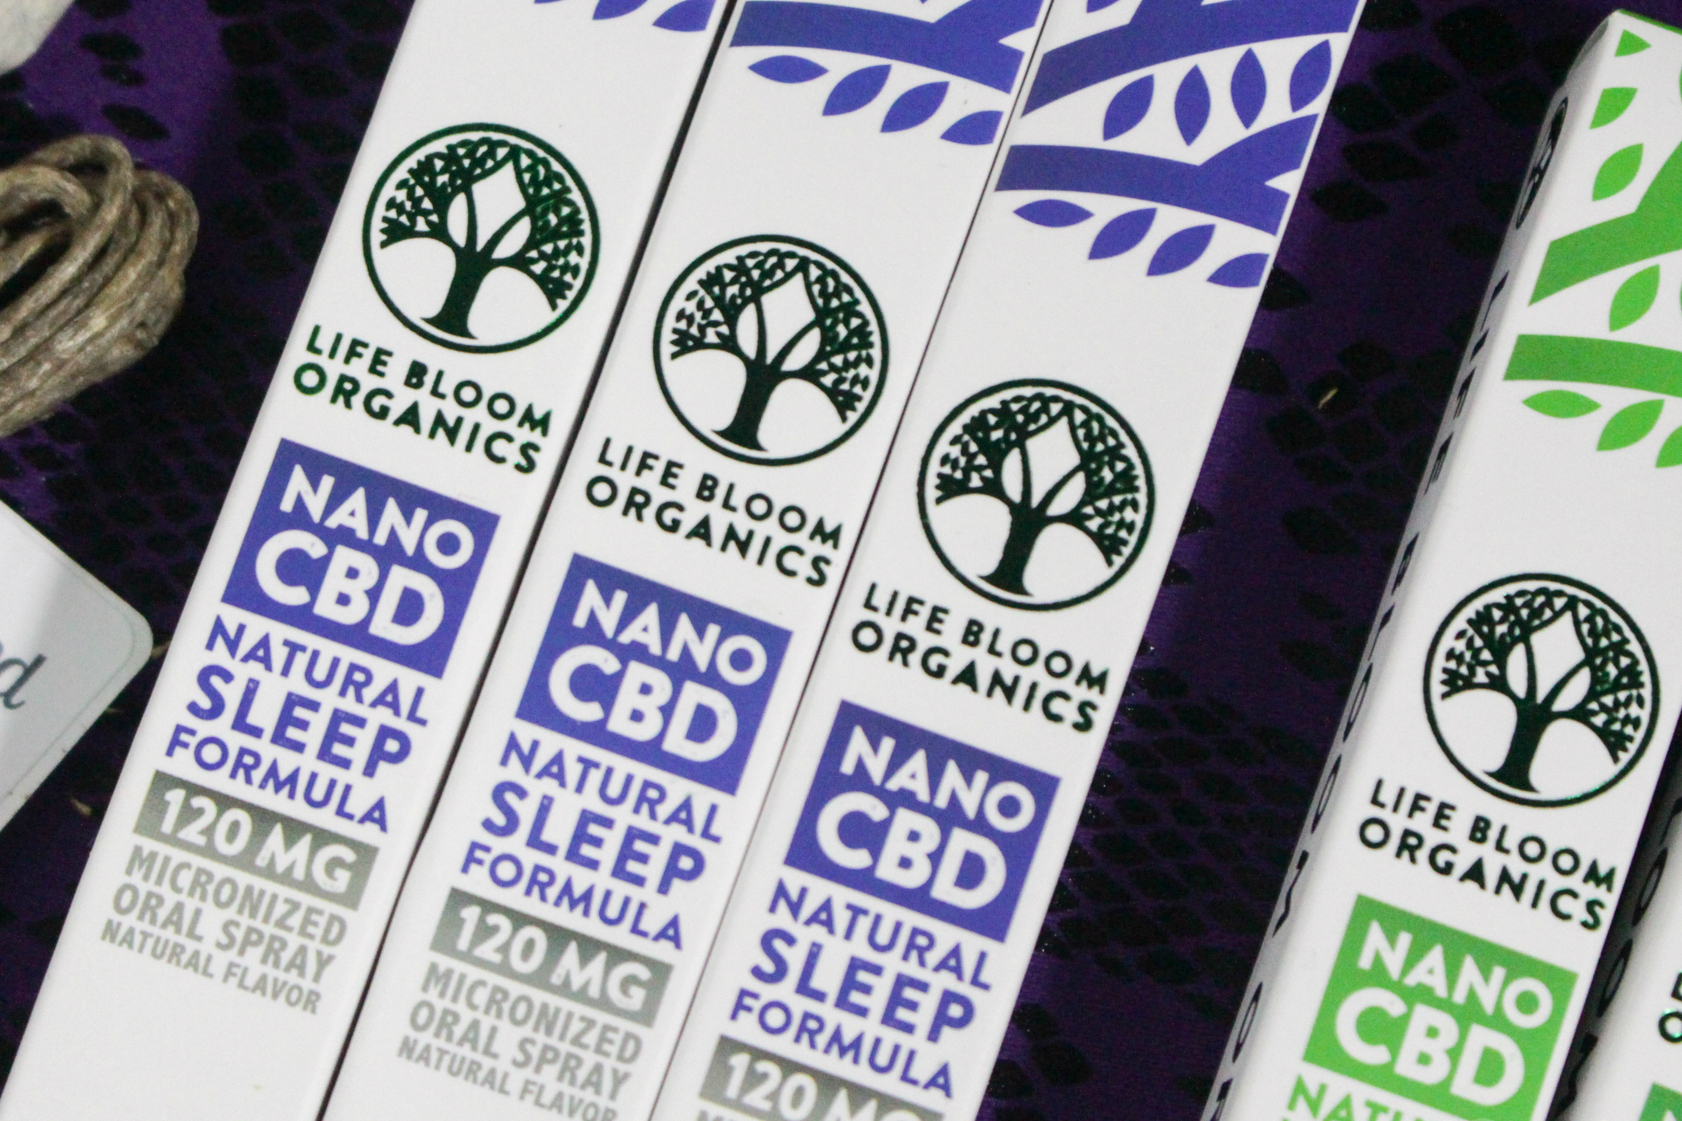 CBD in California: What's Legal and What's Not? | PotGuide com